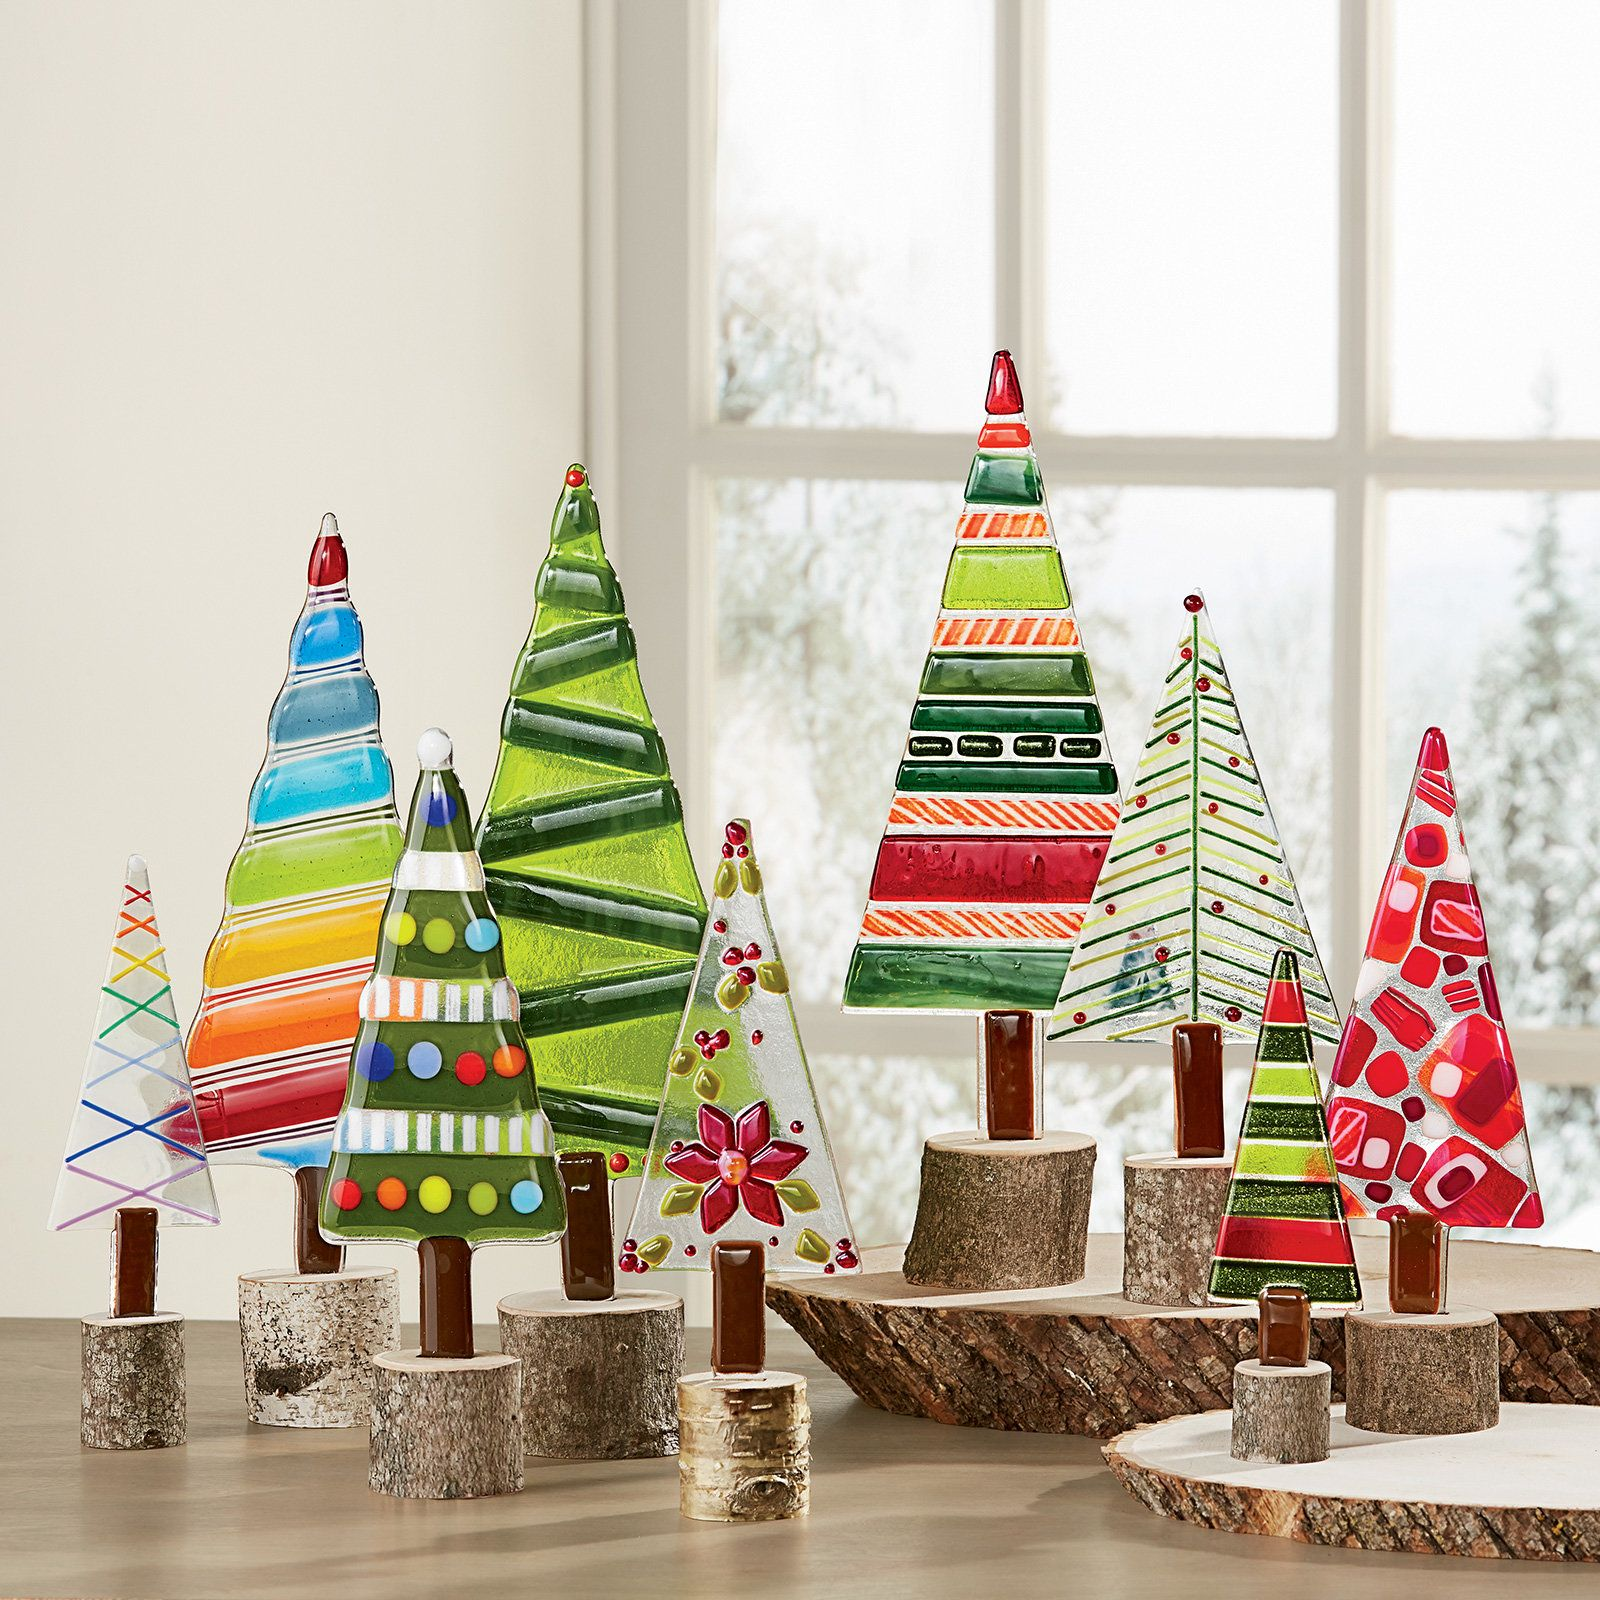 These Vibrant Holiday Trees Are Fancifully Detailed In Fused Glass Then Mounted On Disks Cut From Real Tree Branches Beautiful On Their Own